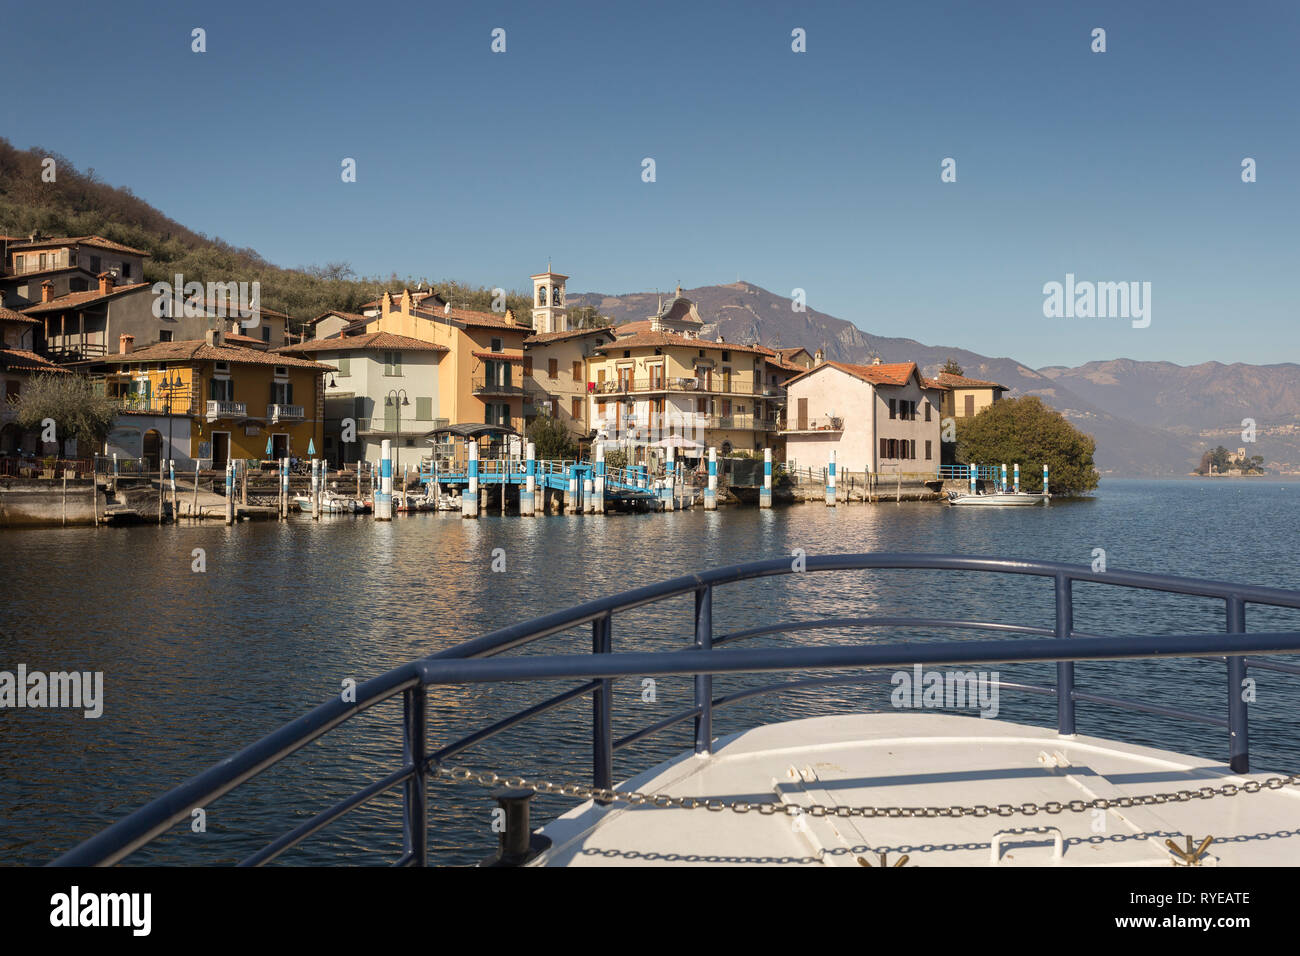 Ferryboat approaching Carzano on Monte Isola, Lombardy, Italy - Stock Image